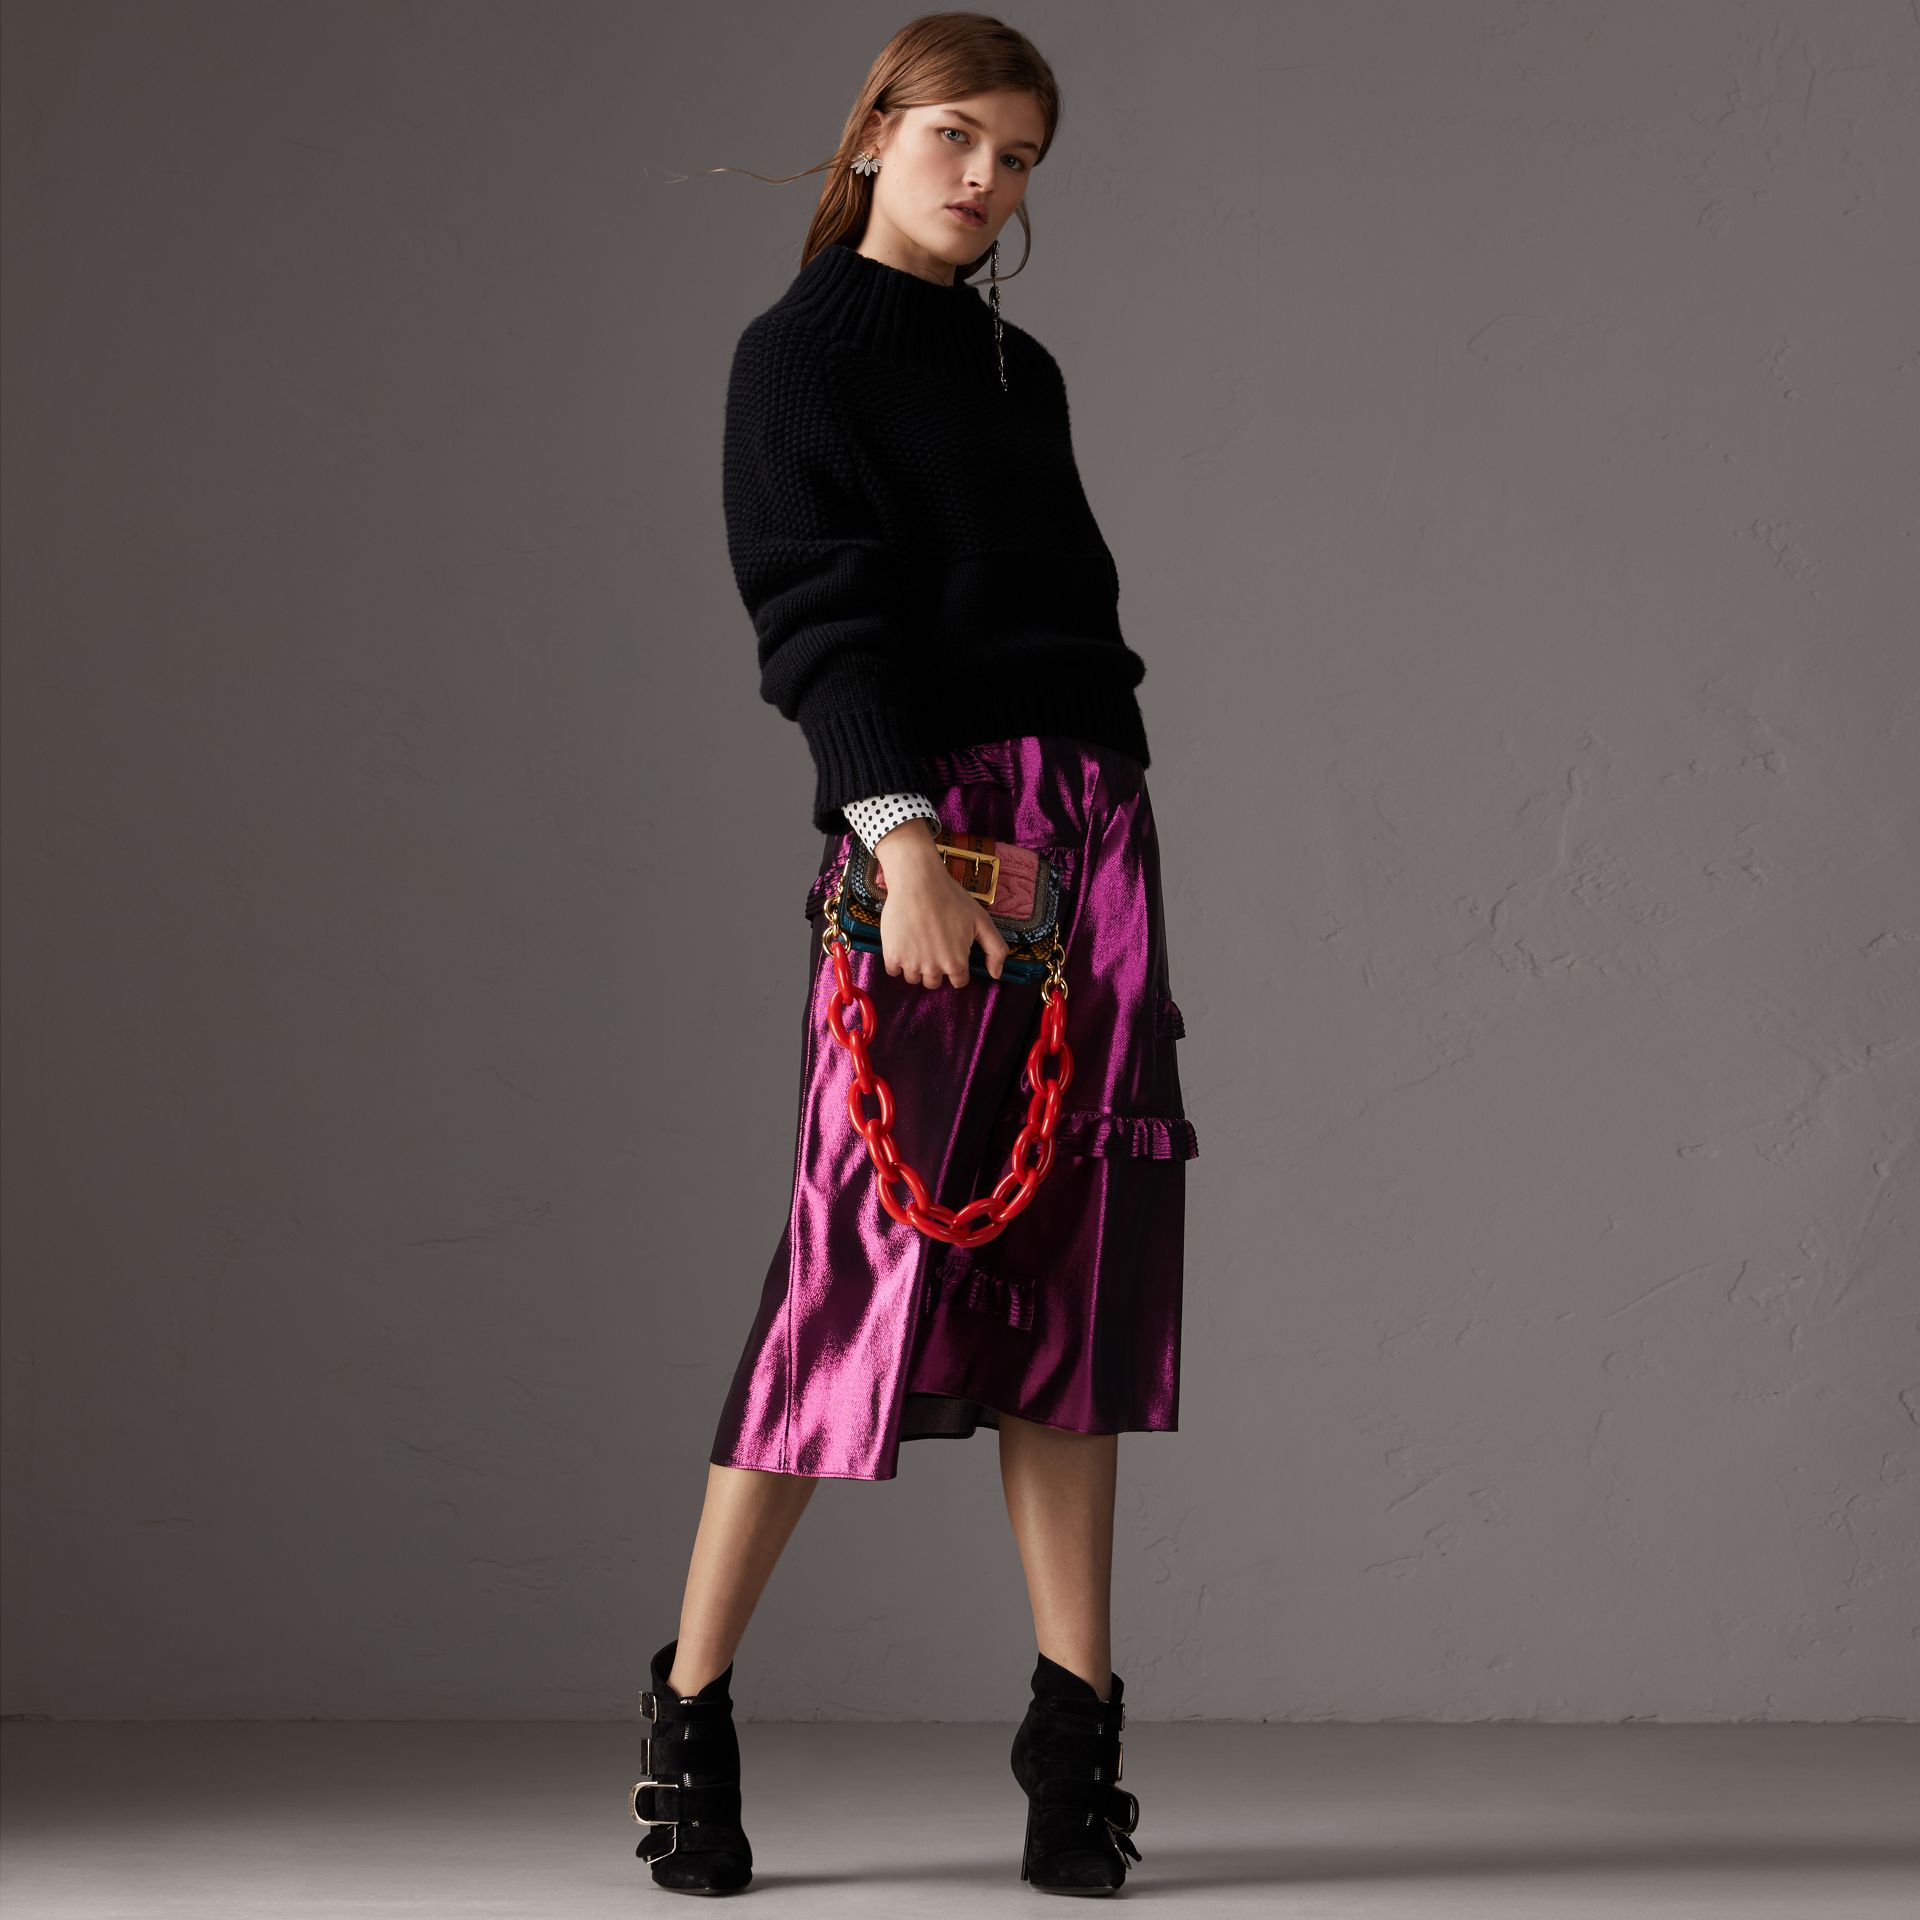 Ruffle Detail Lamé Skirt in Bright Fuchsia - Women | Burberry - gallery image 1